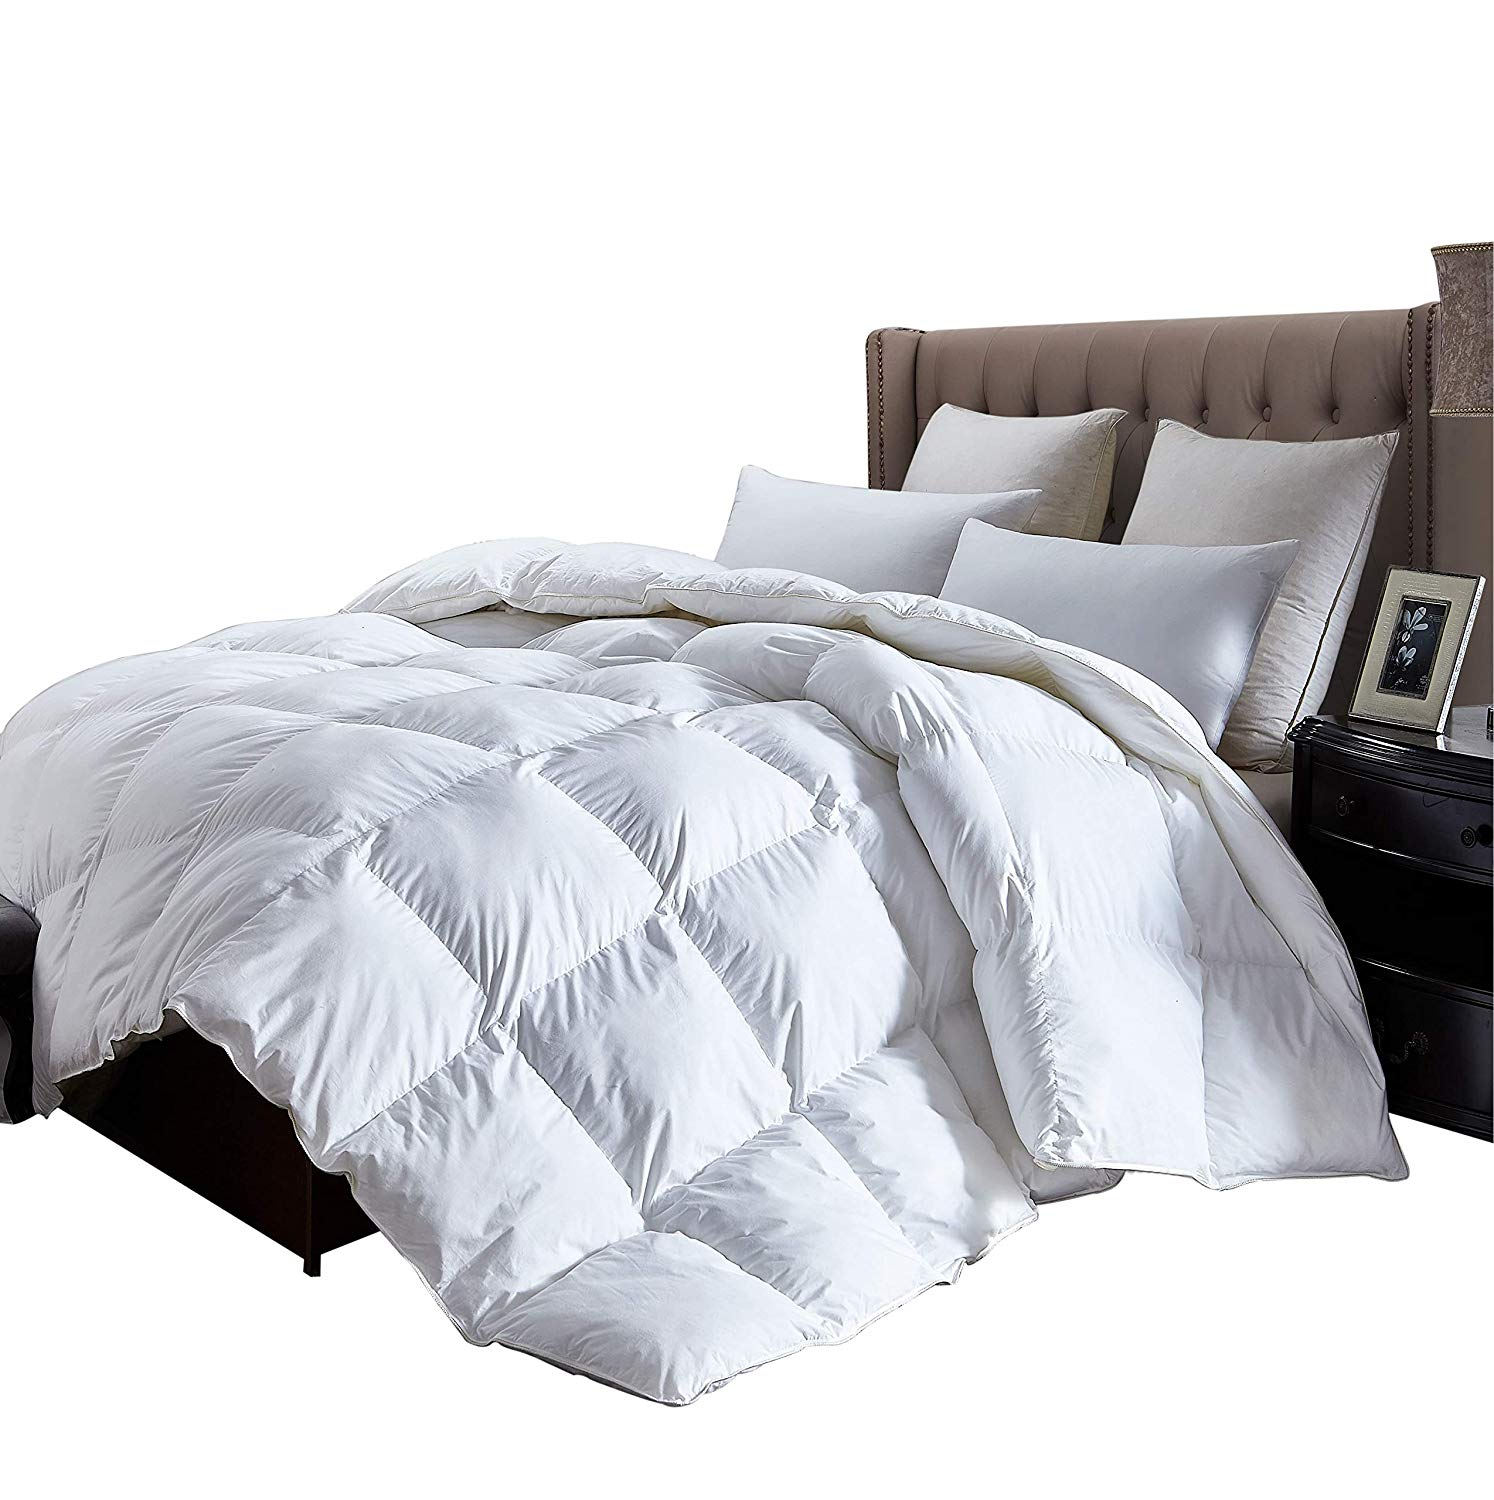 Egyptian Cotton Factory Outlet Store Best Down Comforter Reviews by www.snoremagazine.com